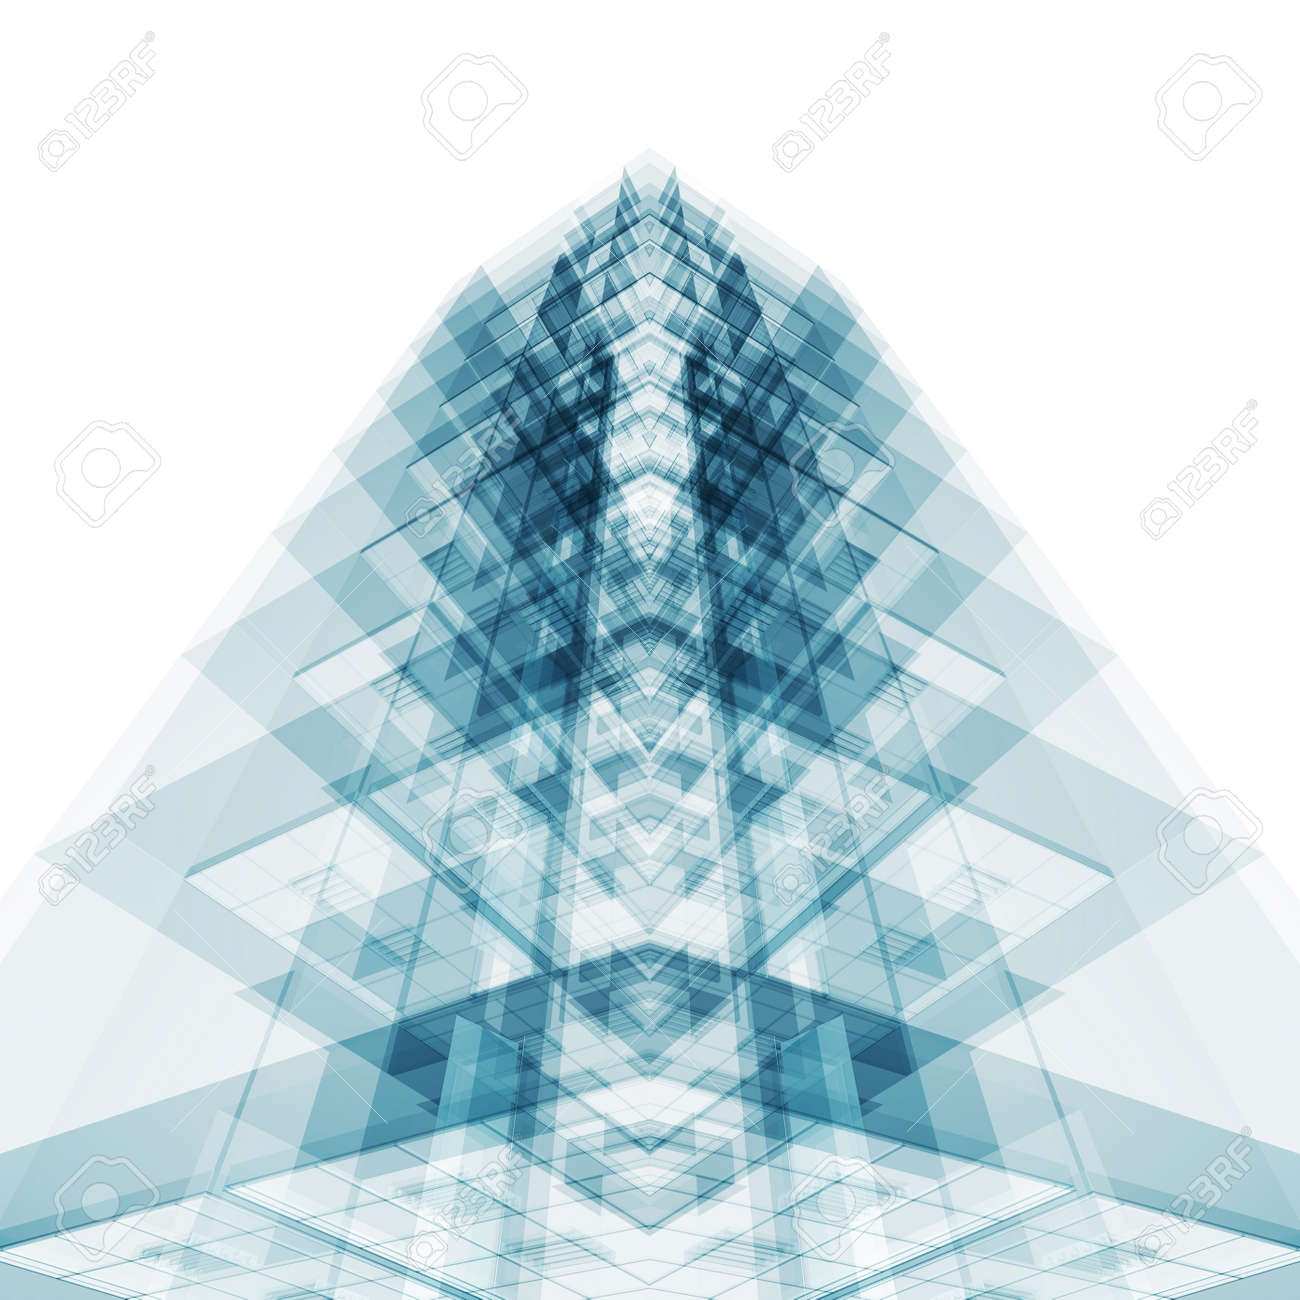 Abstract architecture concept. White isolated. 3d rendering - 135228976